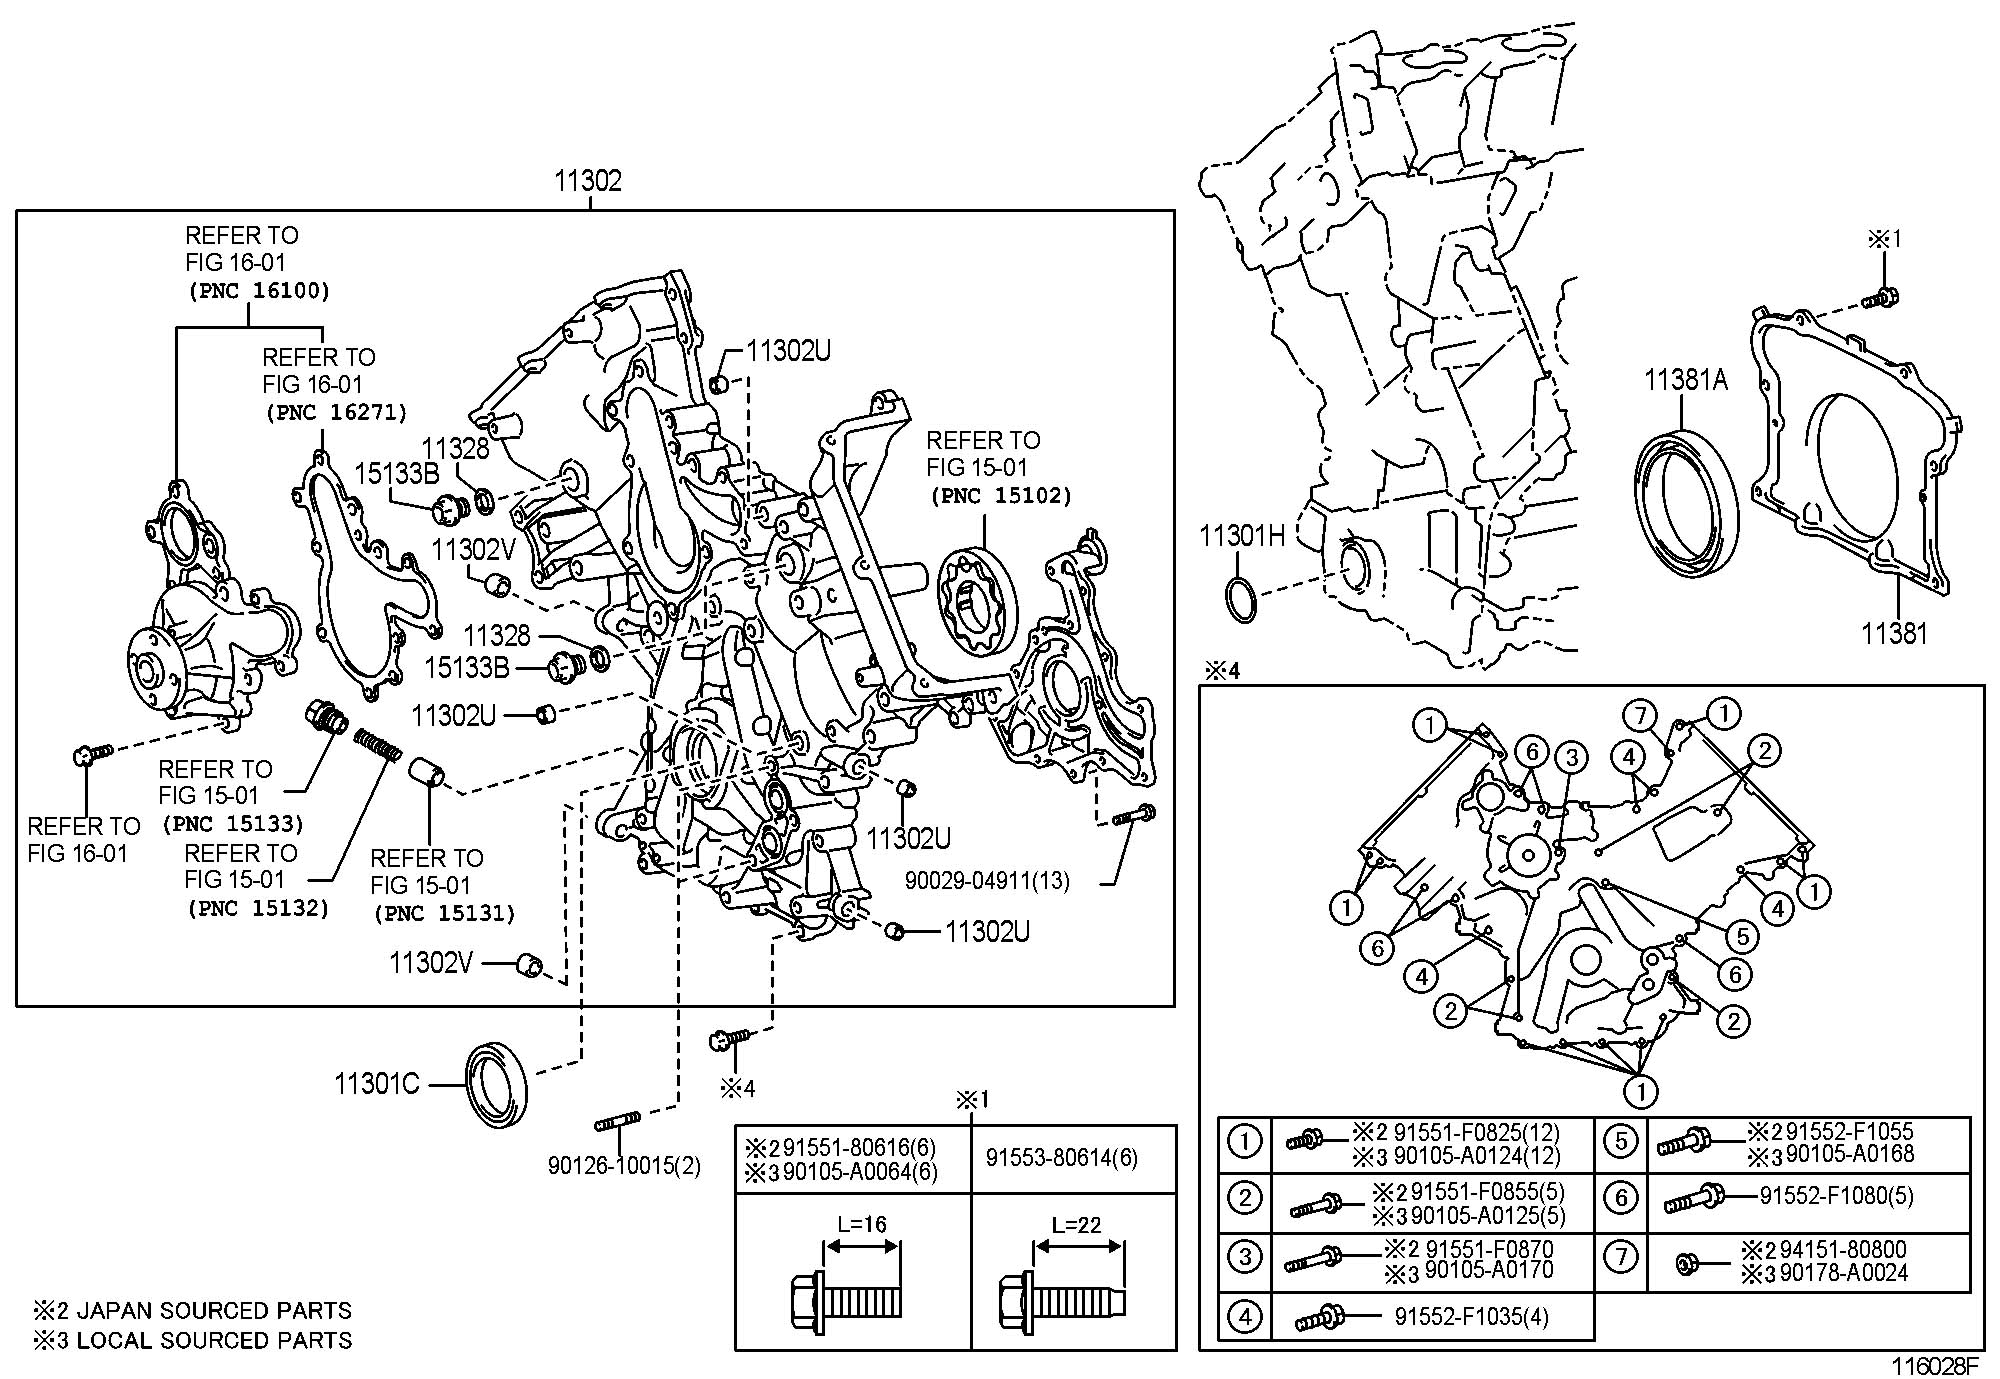 2006 Toyota Tundra Front Suspension Diagram Html together with Engine Diagram Jetta Wiring Amazing in addition Toyota Belt Routing Diagrams likewise 2002 Toyota Prius Hybrid Engine Diagram furthermore 2004 Toyota 4runner Stereo Wiring Diagram. on 2004 toyota tundra timing chain